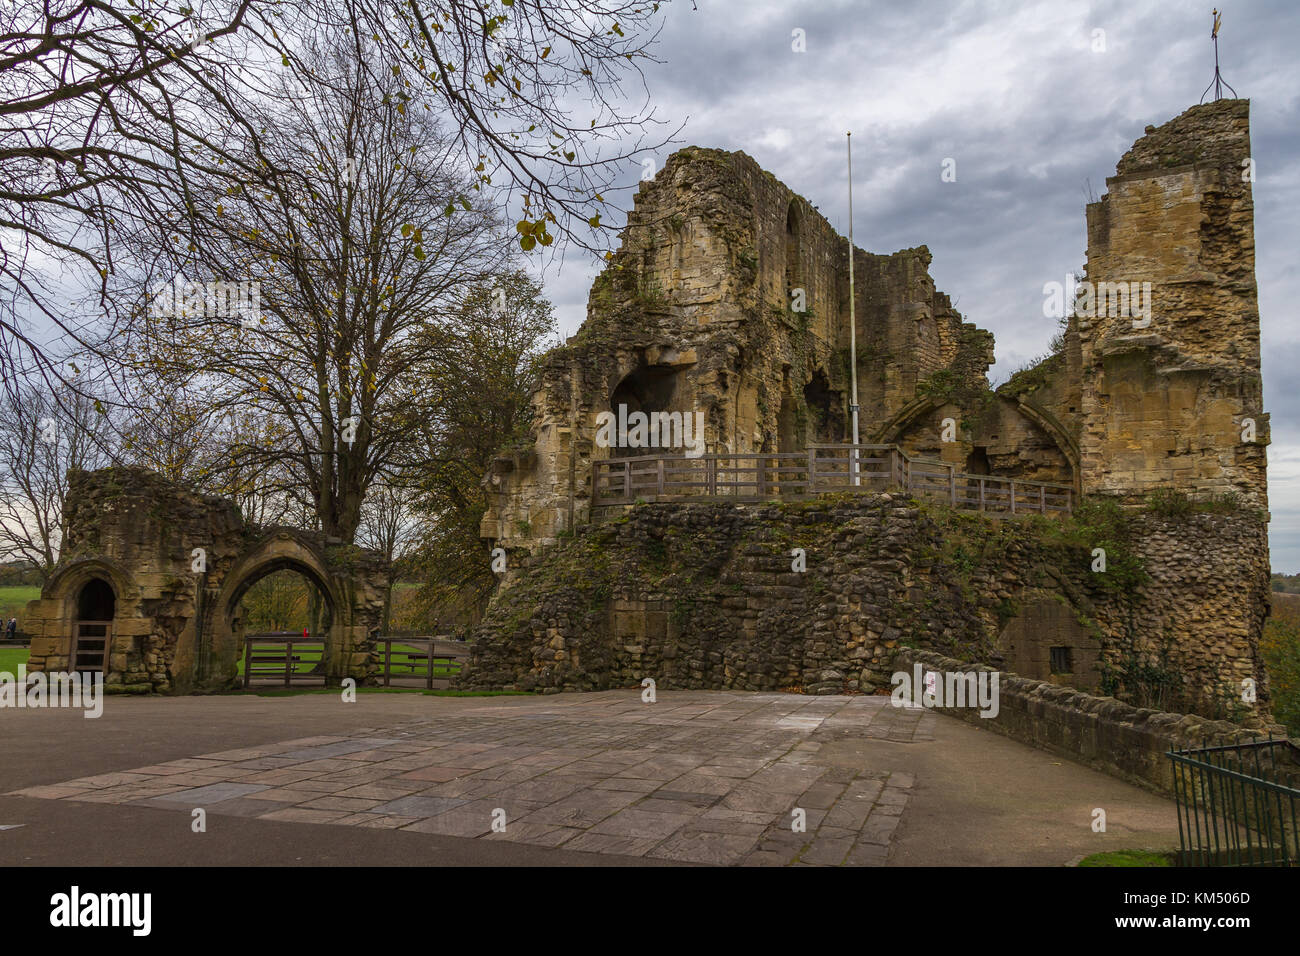 Ruins of Knaresborough Castle keep, destroyed in the English Civil War. Yorkshire, 2017. - Stock Image